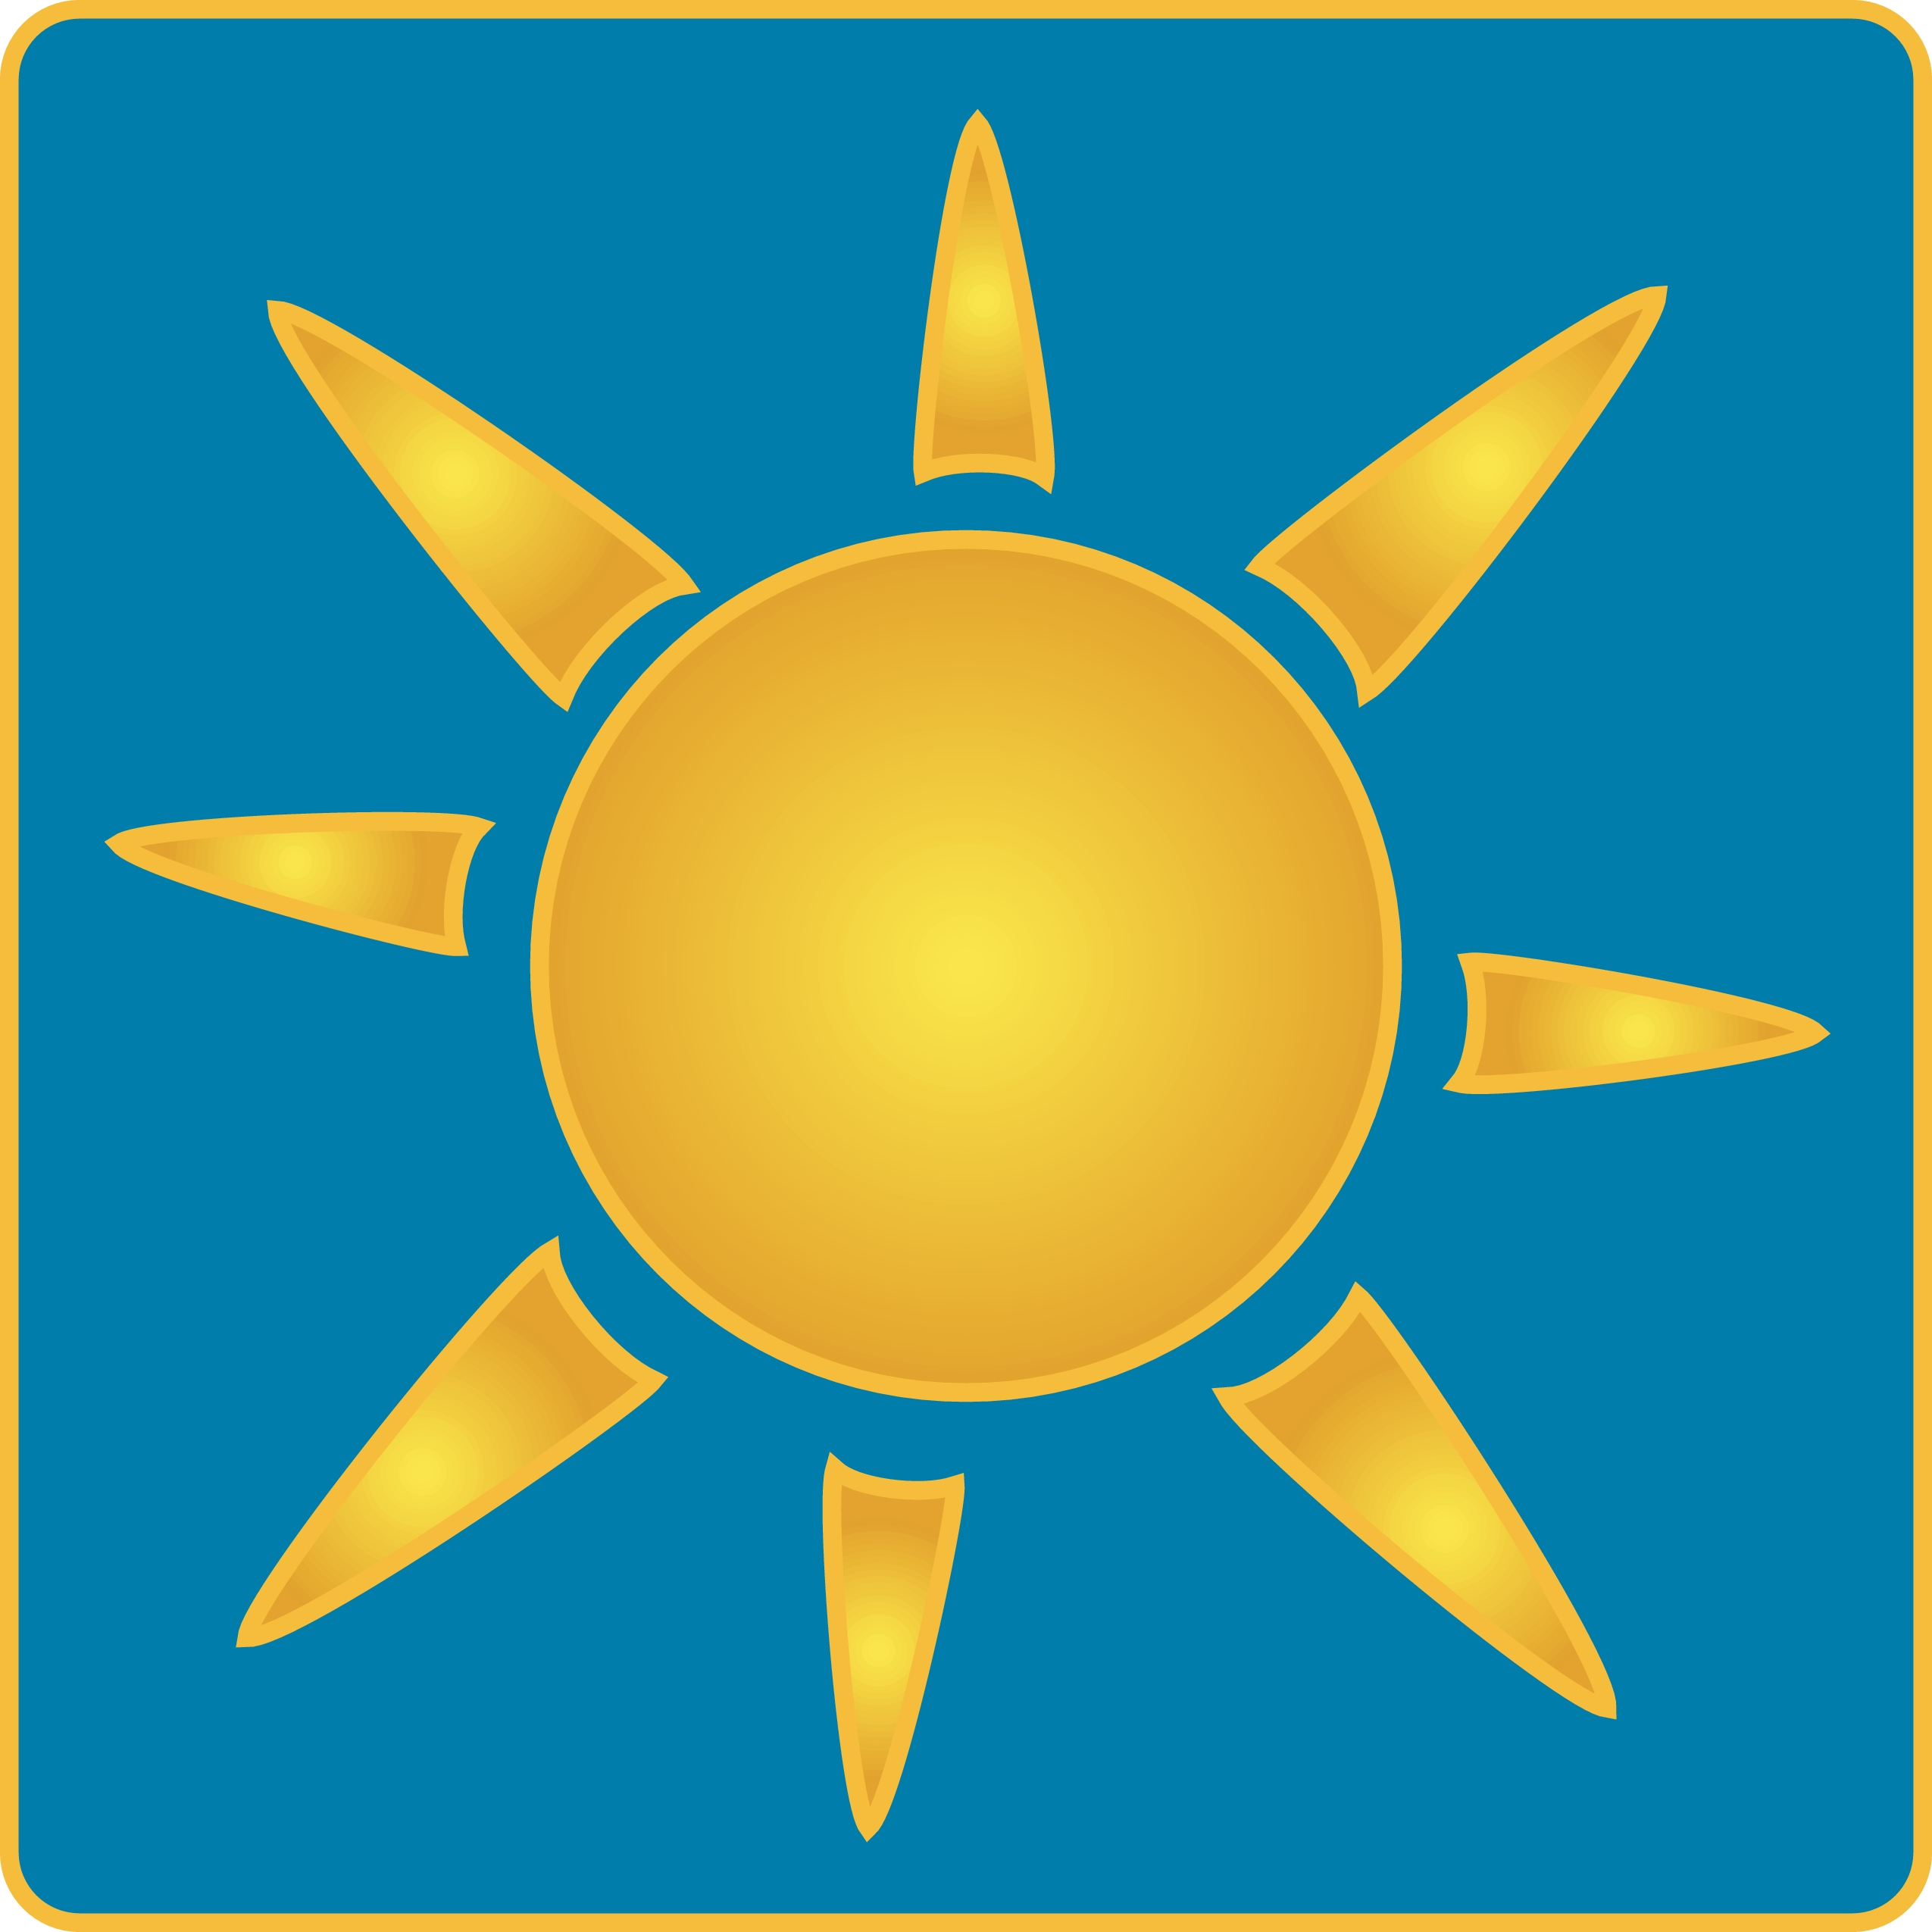 Free Sun Rays Images, Download Free Clip Art, Free Clip Art.